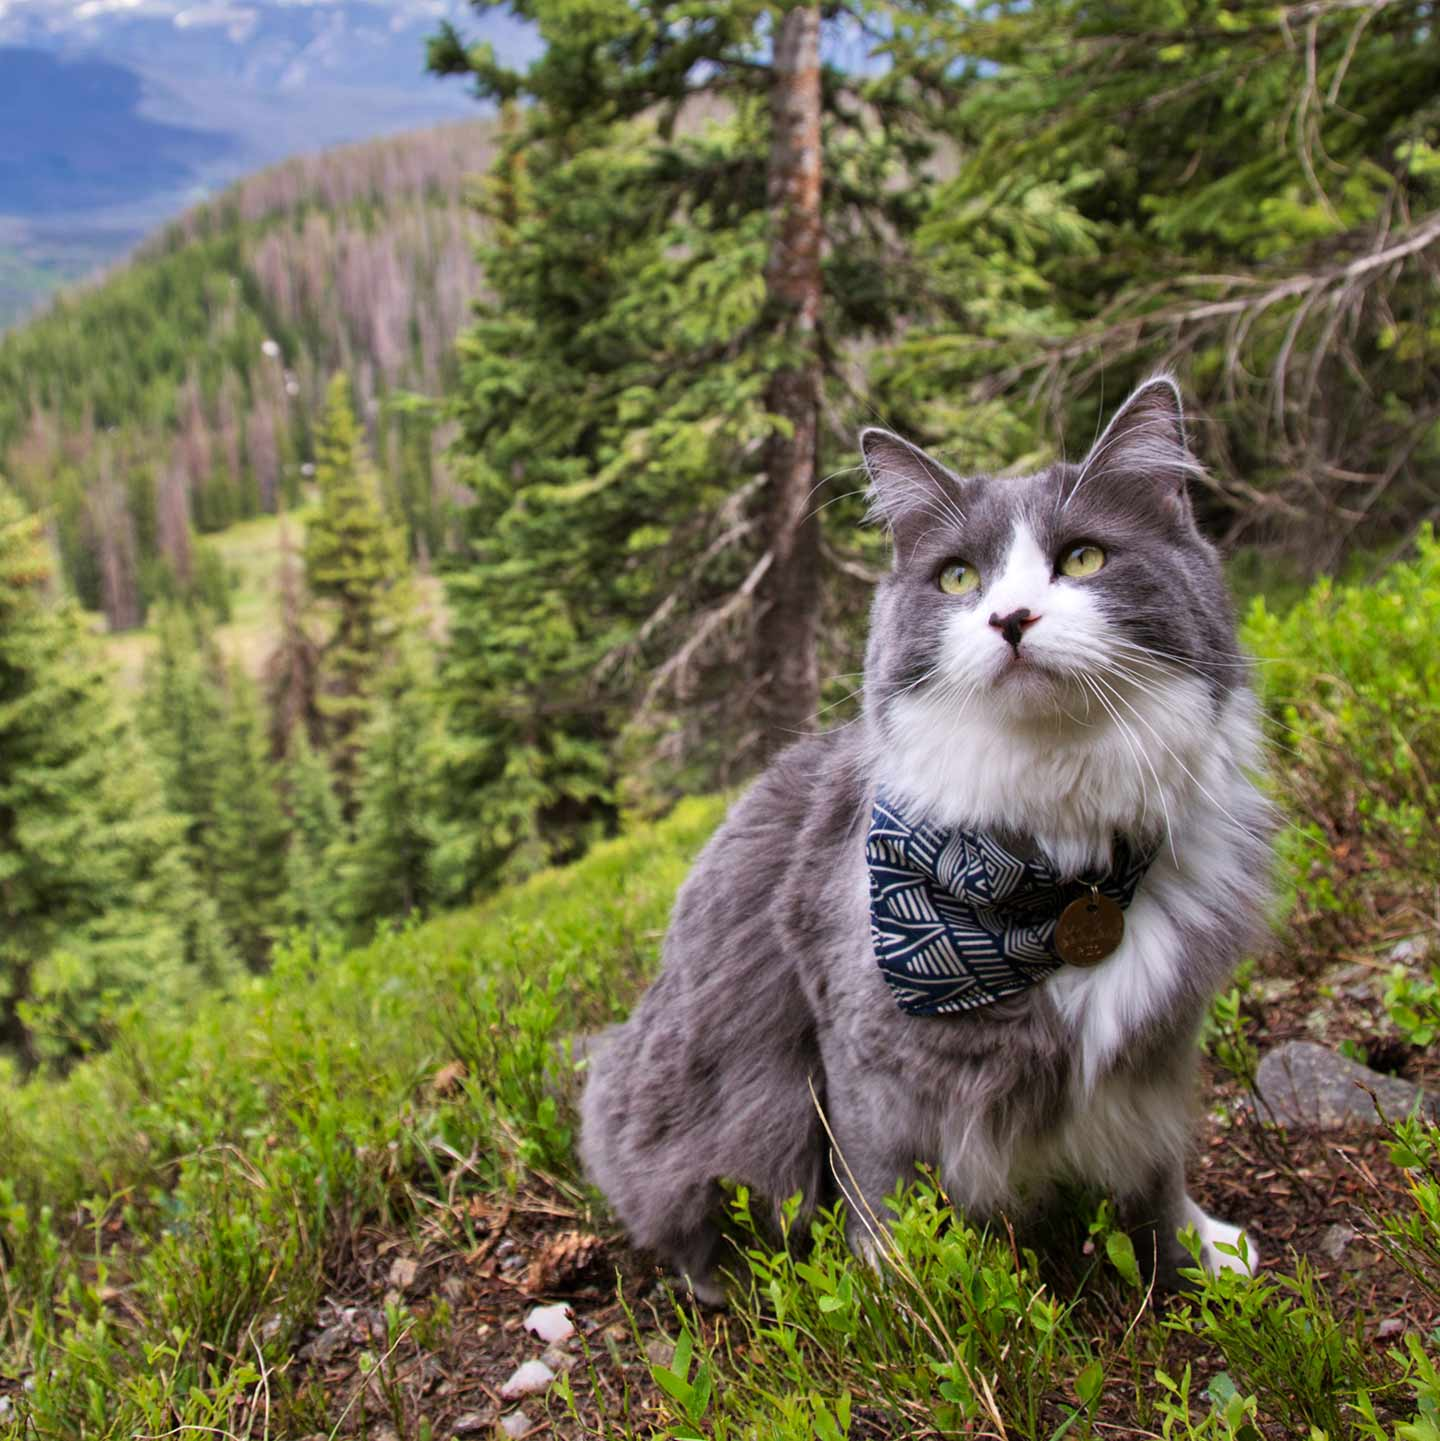 Helpful Tips and Tricks for Taking Your Cat on a Hike